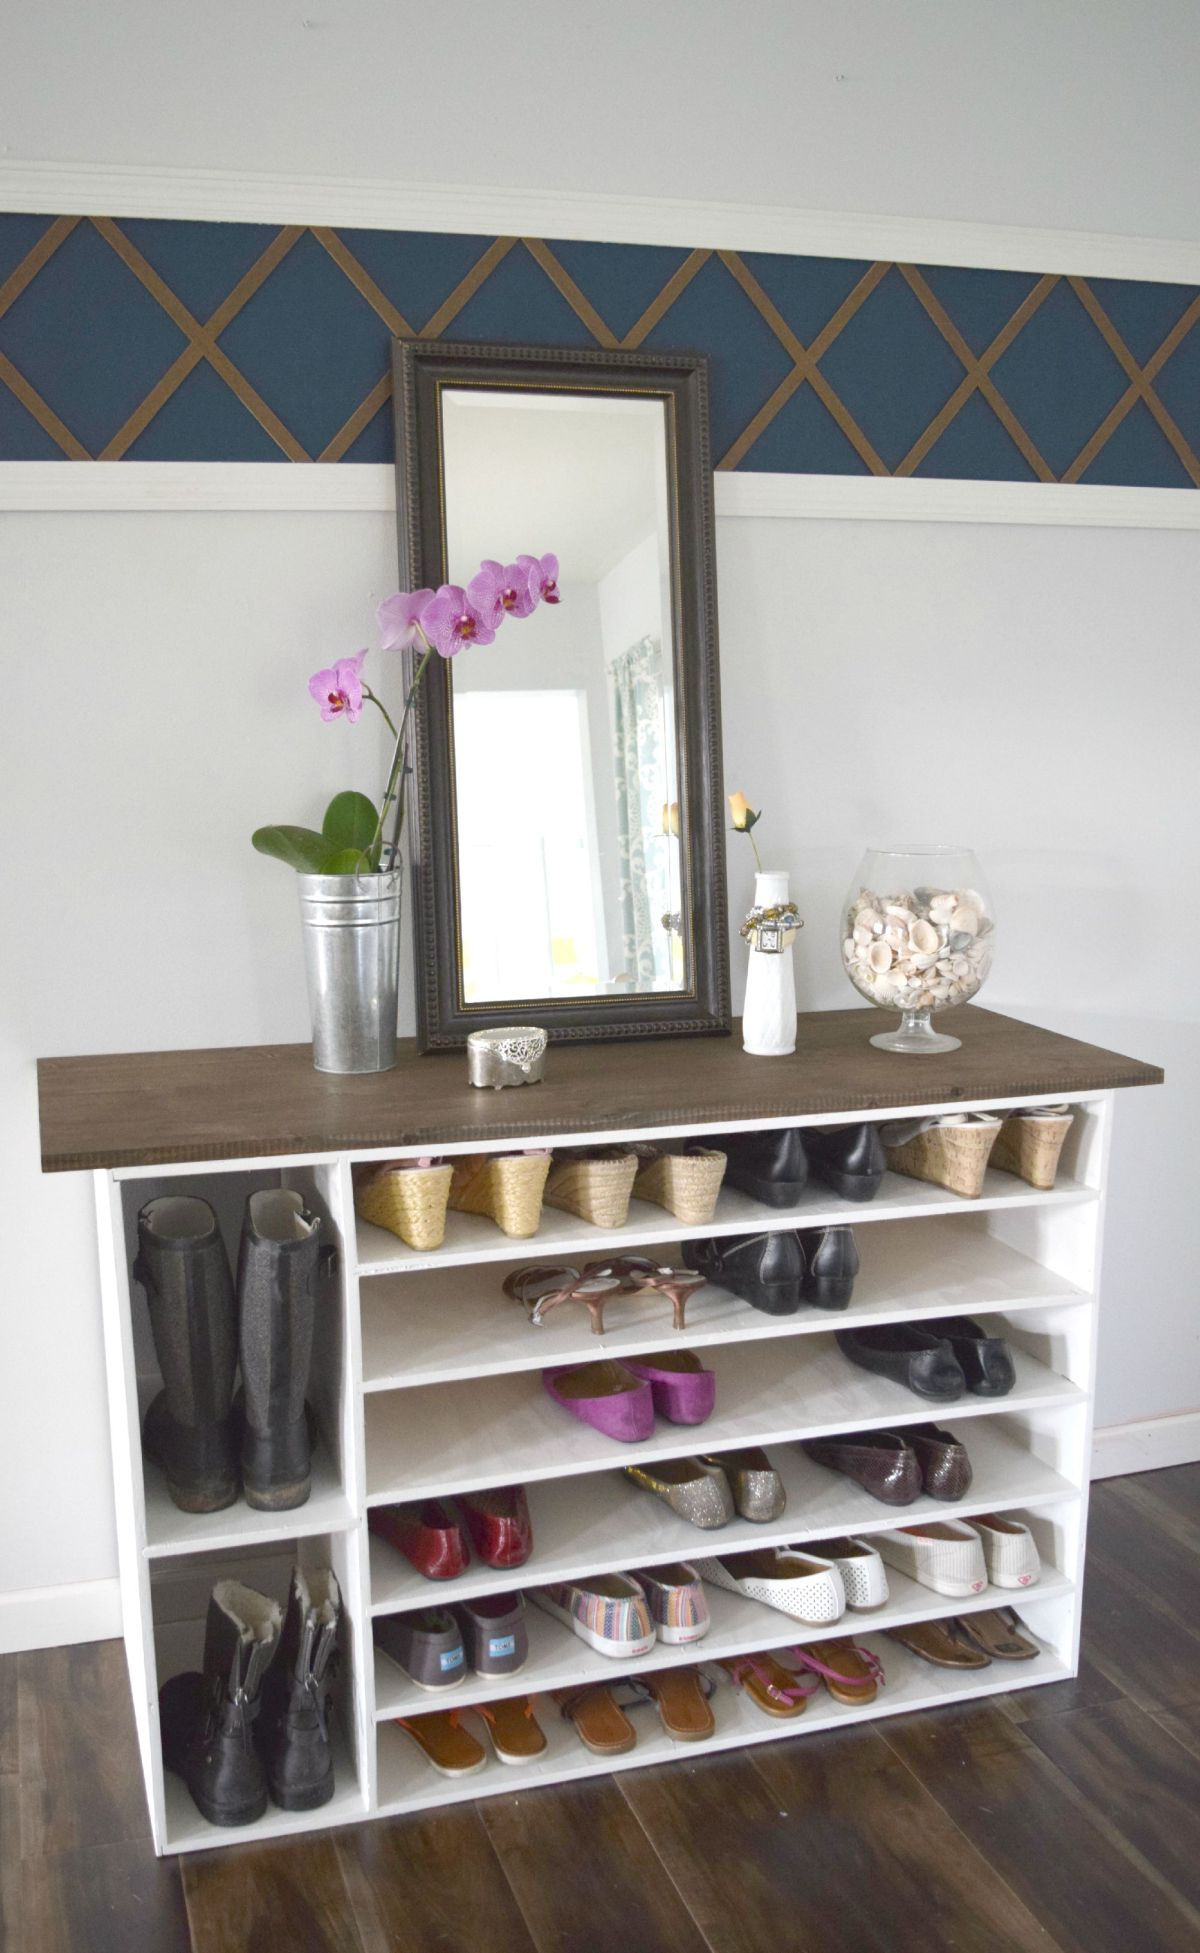 How To Build A Custom Shoe Rack From Scratch 14 Cool Ideas